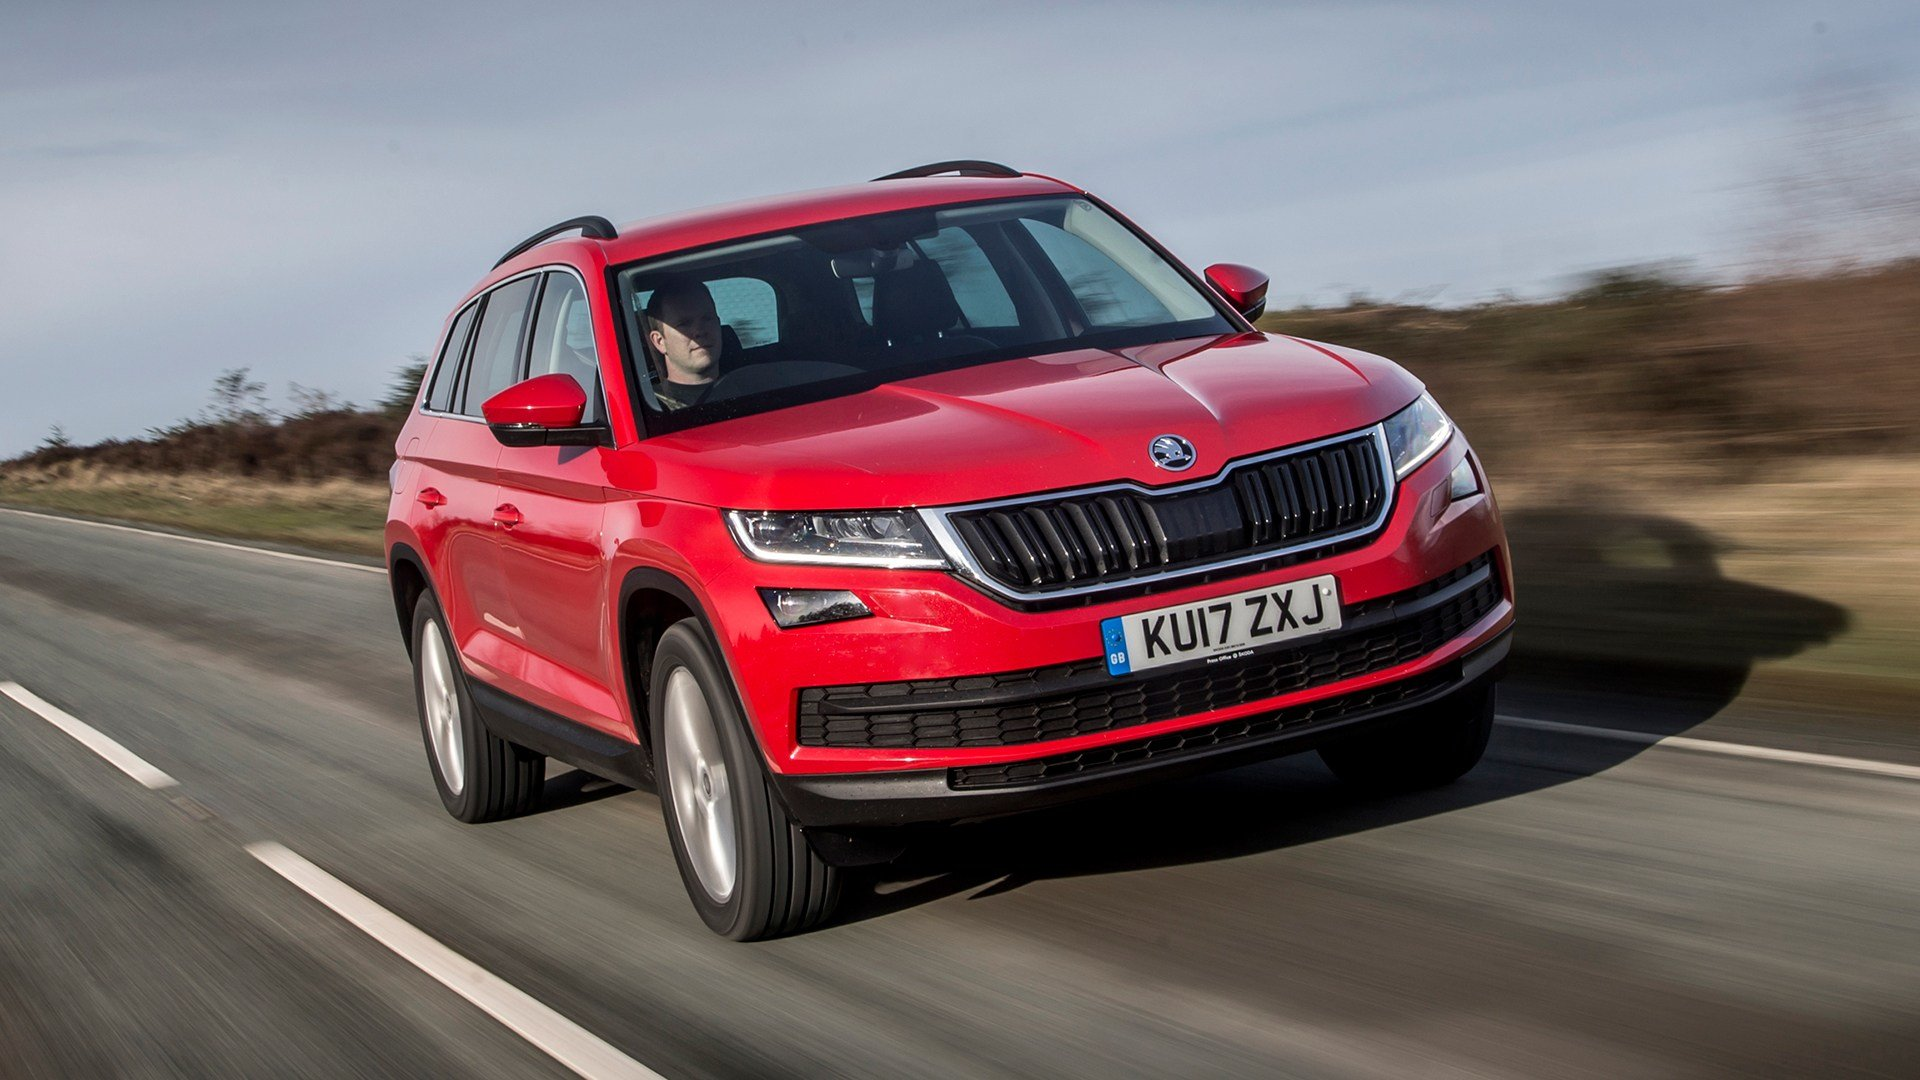 New Skoda Kodiaq Suv 2016 Review Auto Trader Uk On This Month